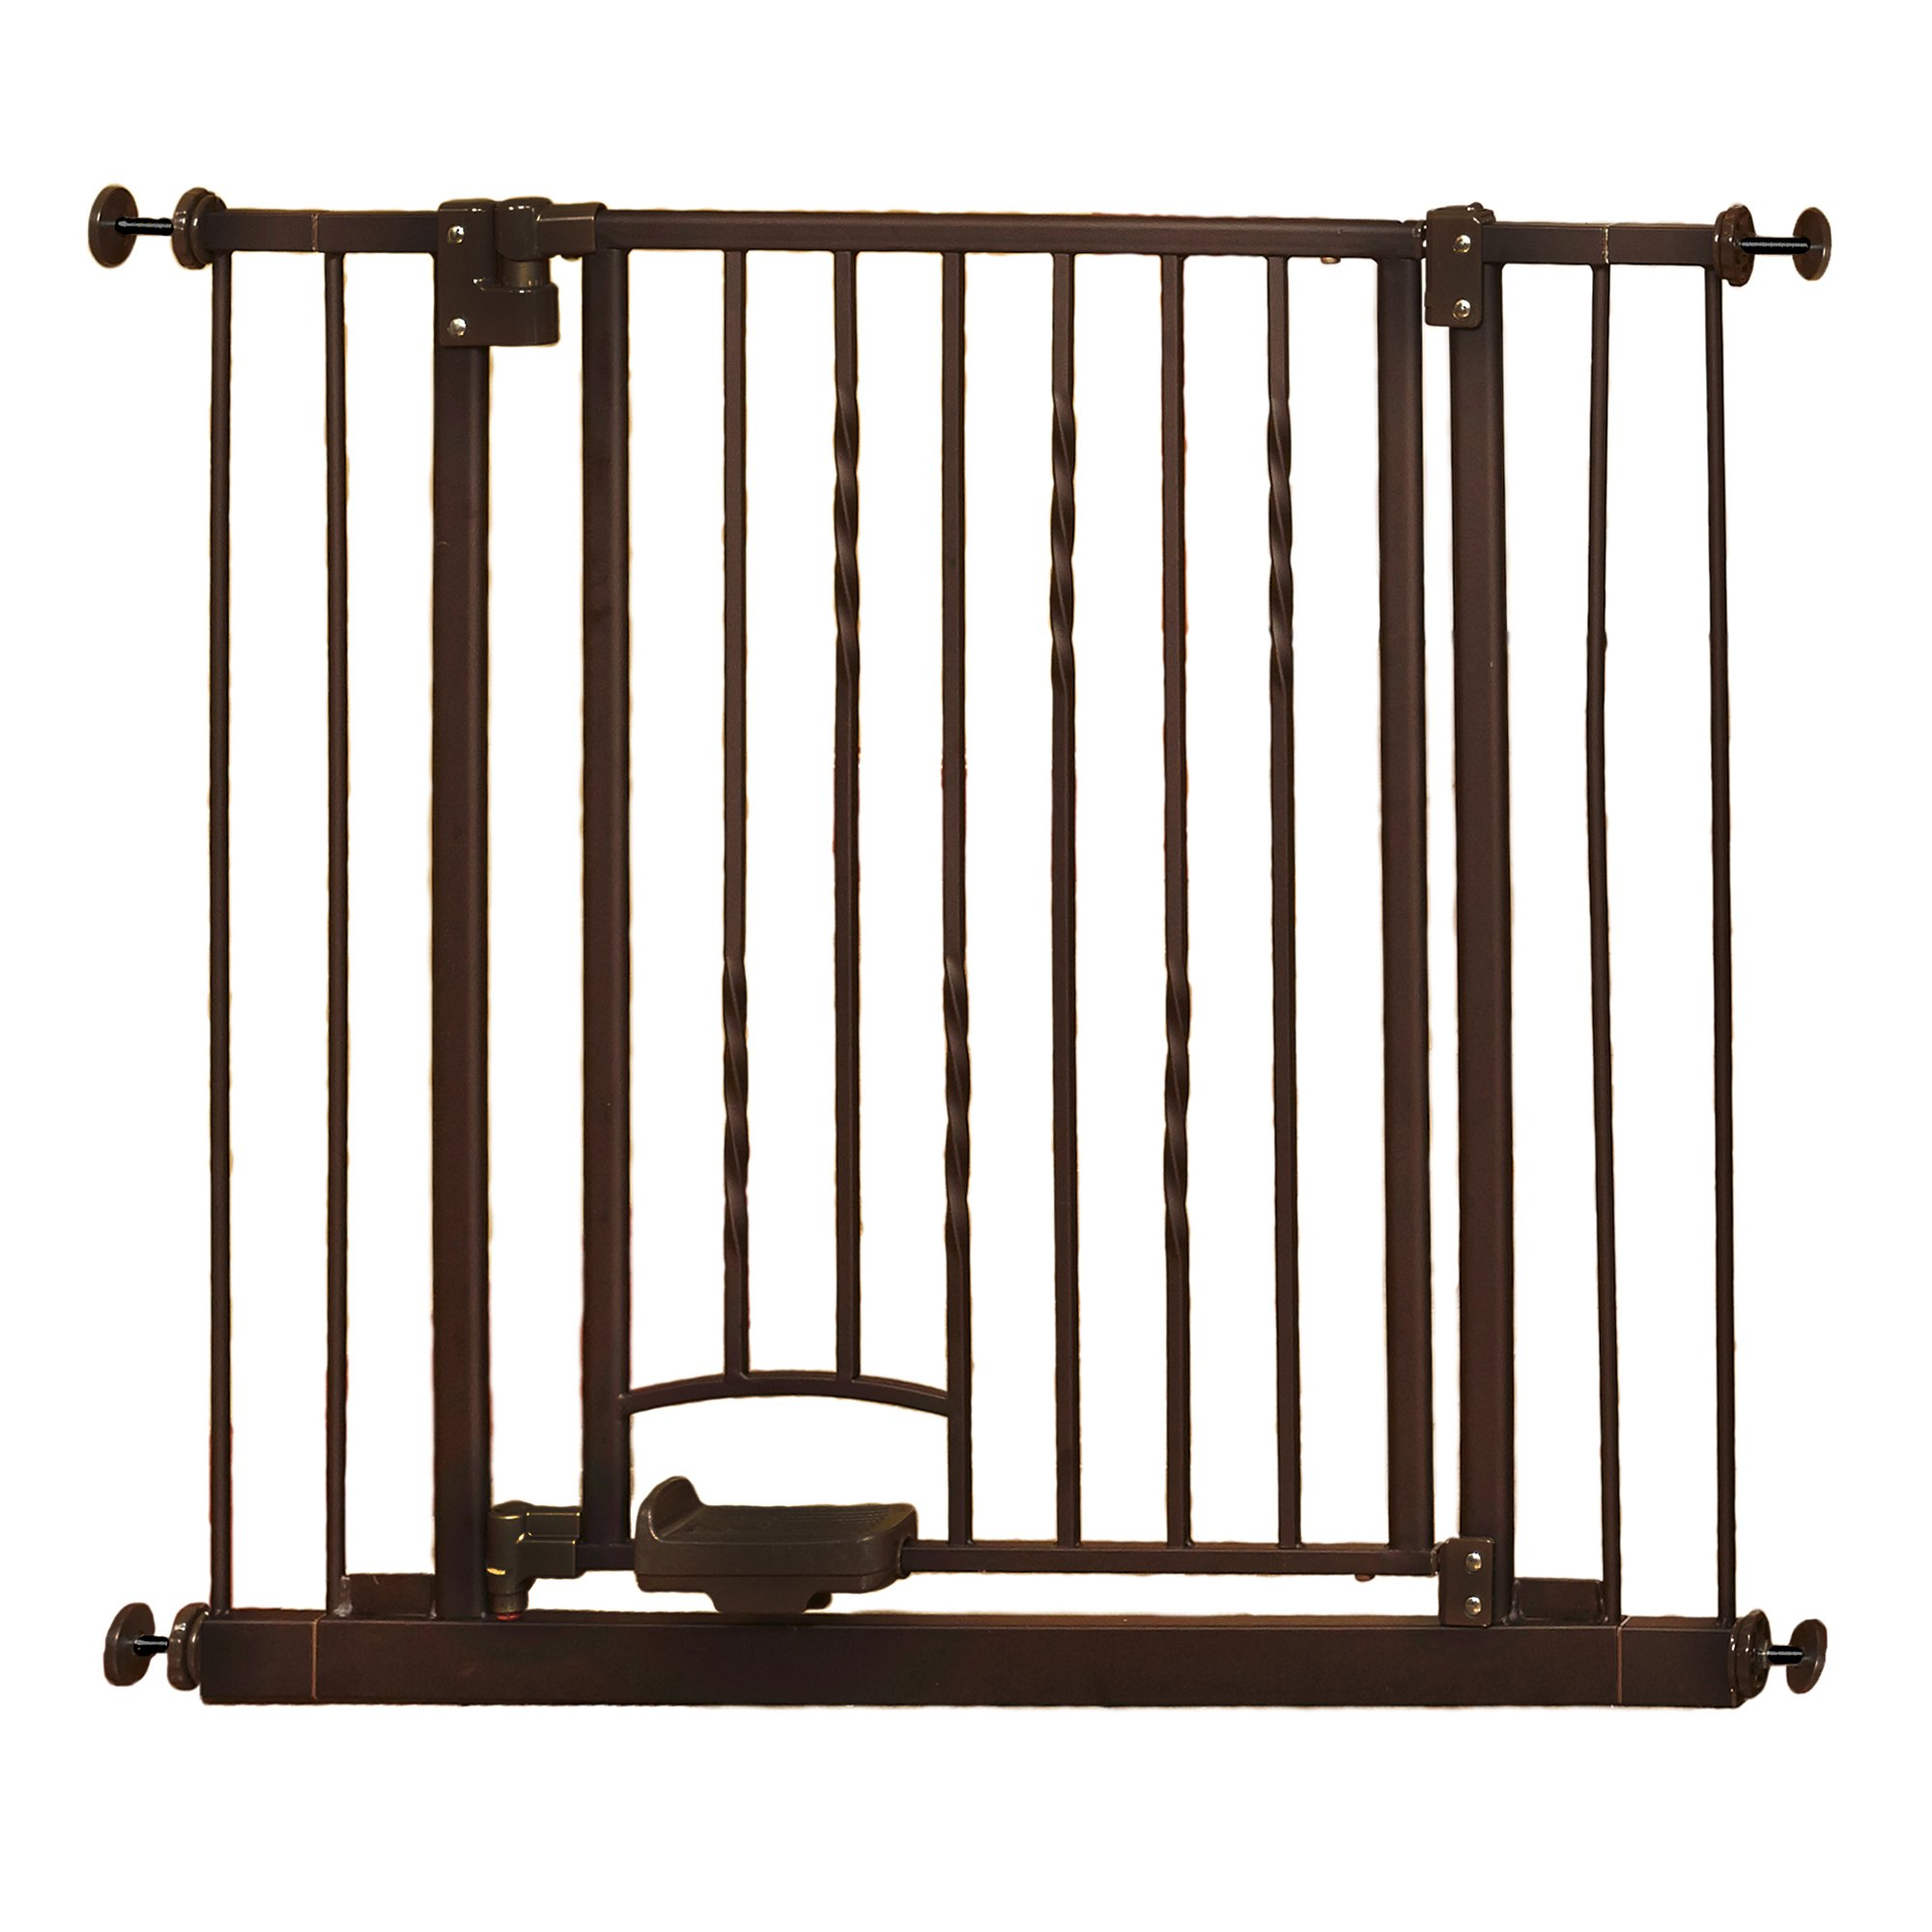 Supergate Step n Go Gate, Bronze, Fits Spaces between 31.25'' to 38.25'' Wide and 30''high